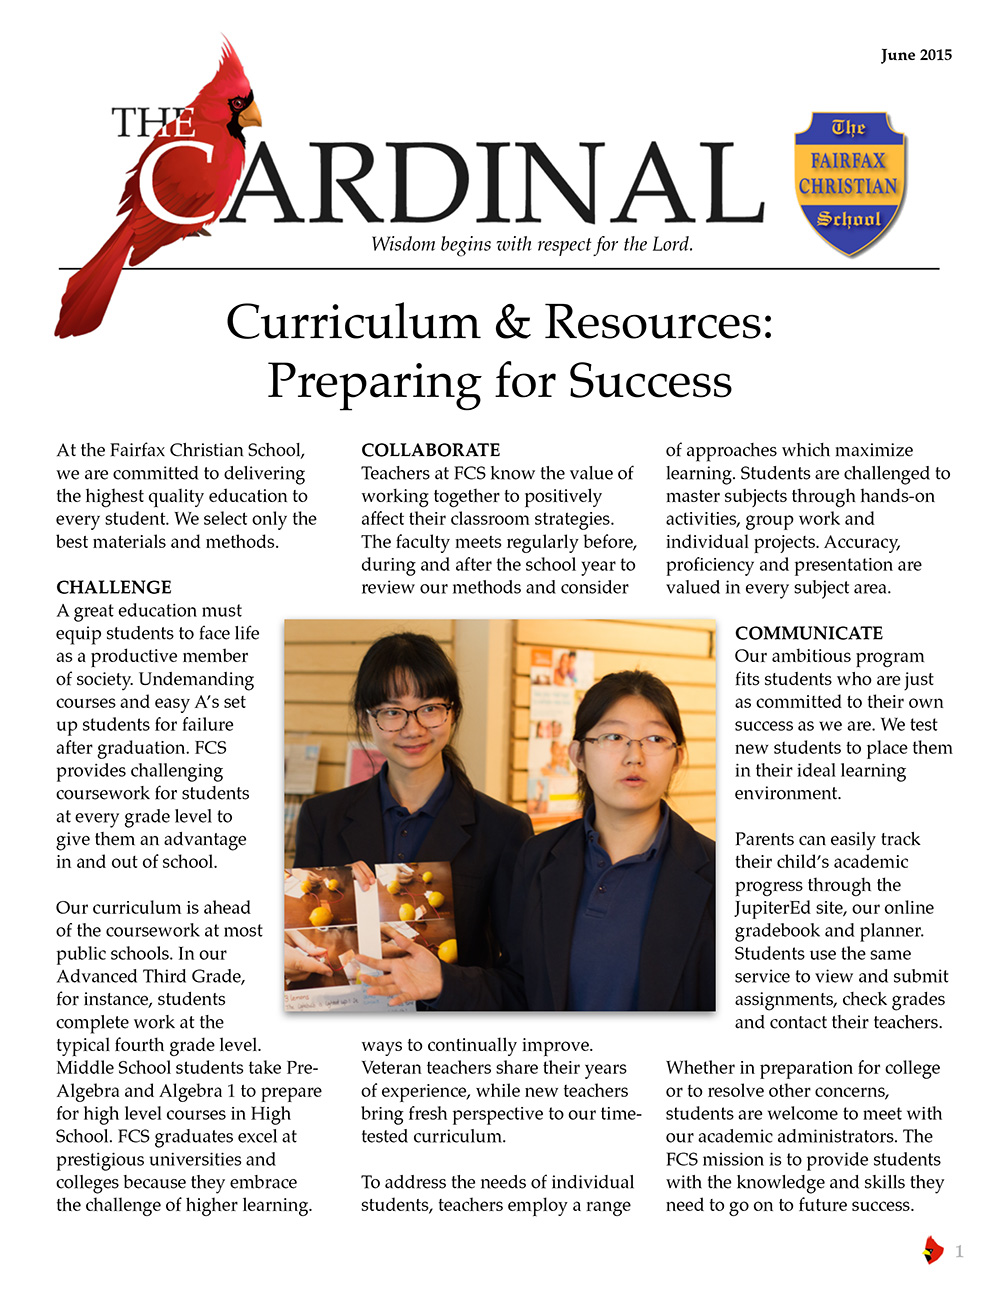 The-Cardinal-Cover-Page-June-2015.jpg